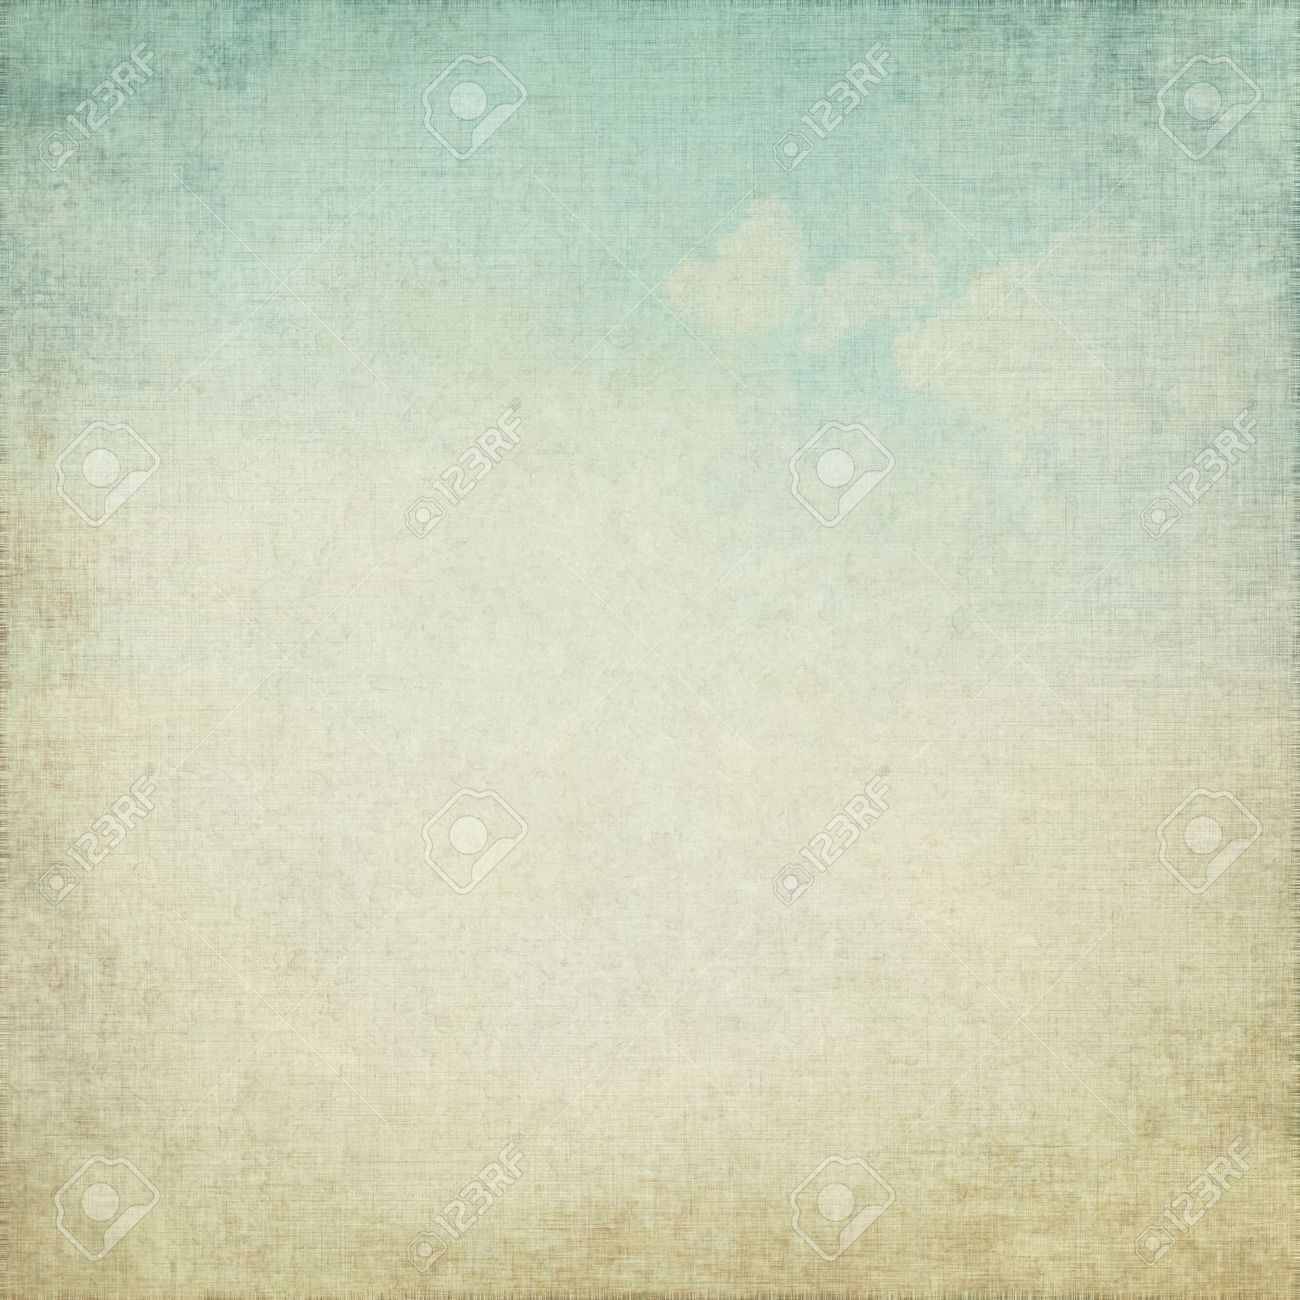 old parchment grunge background with delicate abstract canvas texture and blue sky view Stock Photo - 15329223